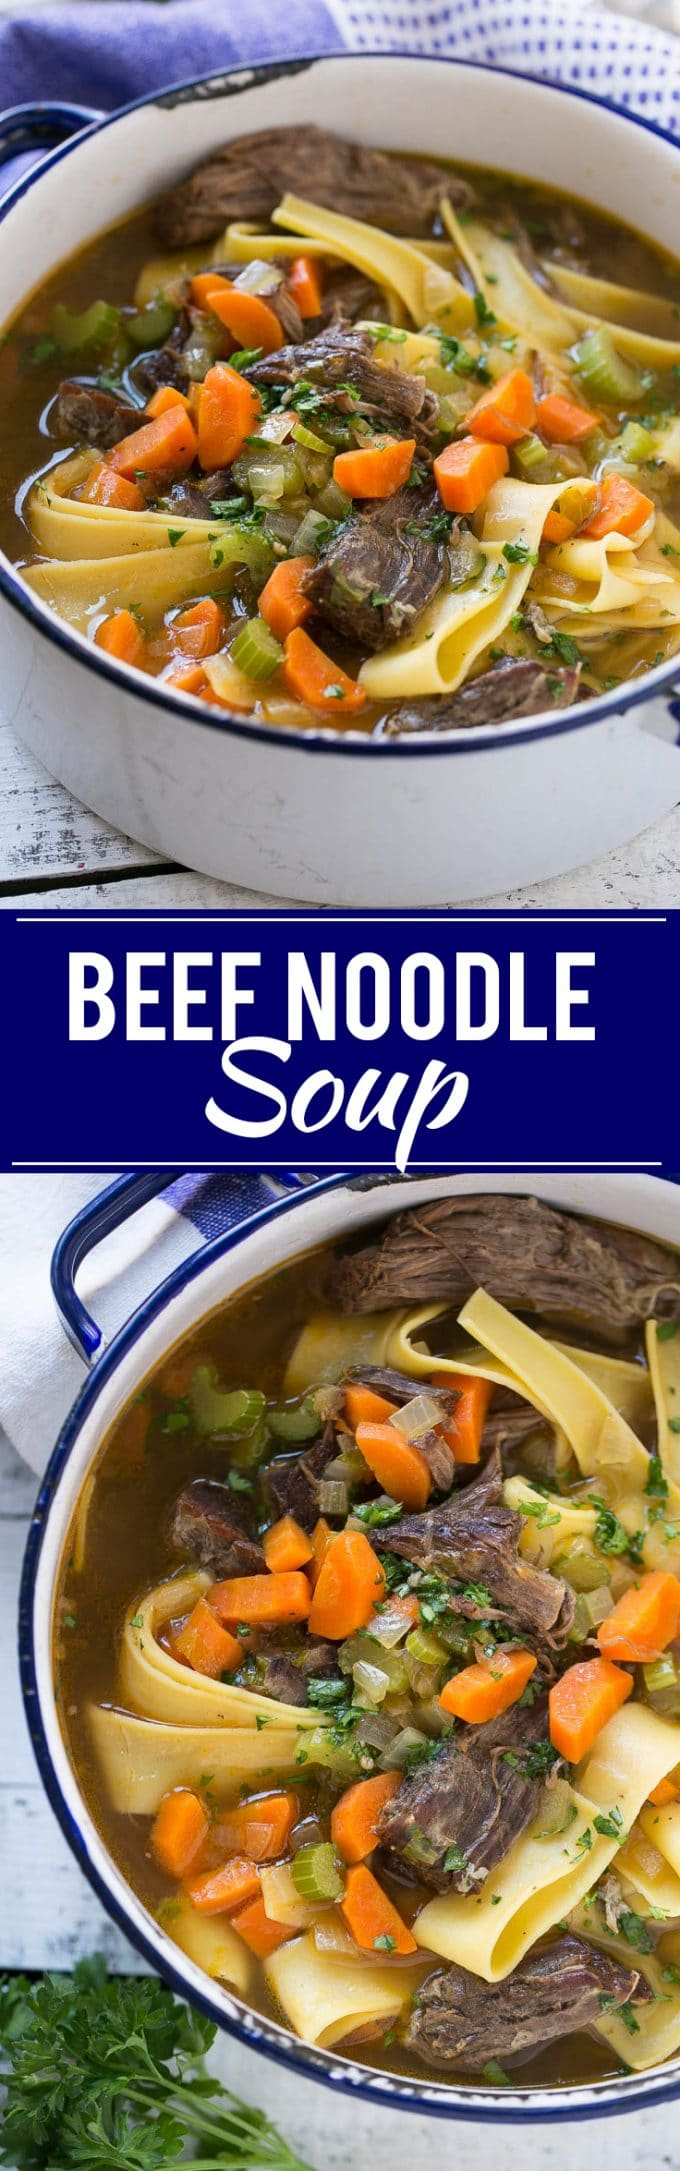 Beef and Egg Noodle Soup Recipe | Beef and Egg Noodle Soup | Beef Noodle Soup | Easy Beef Noodle Soup | Best Beef Noodle Soup